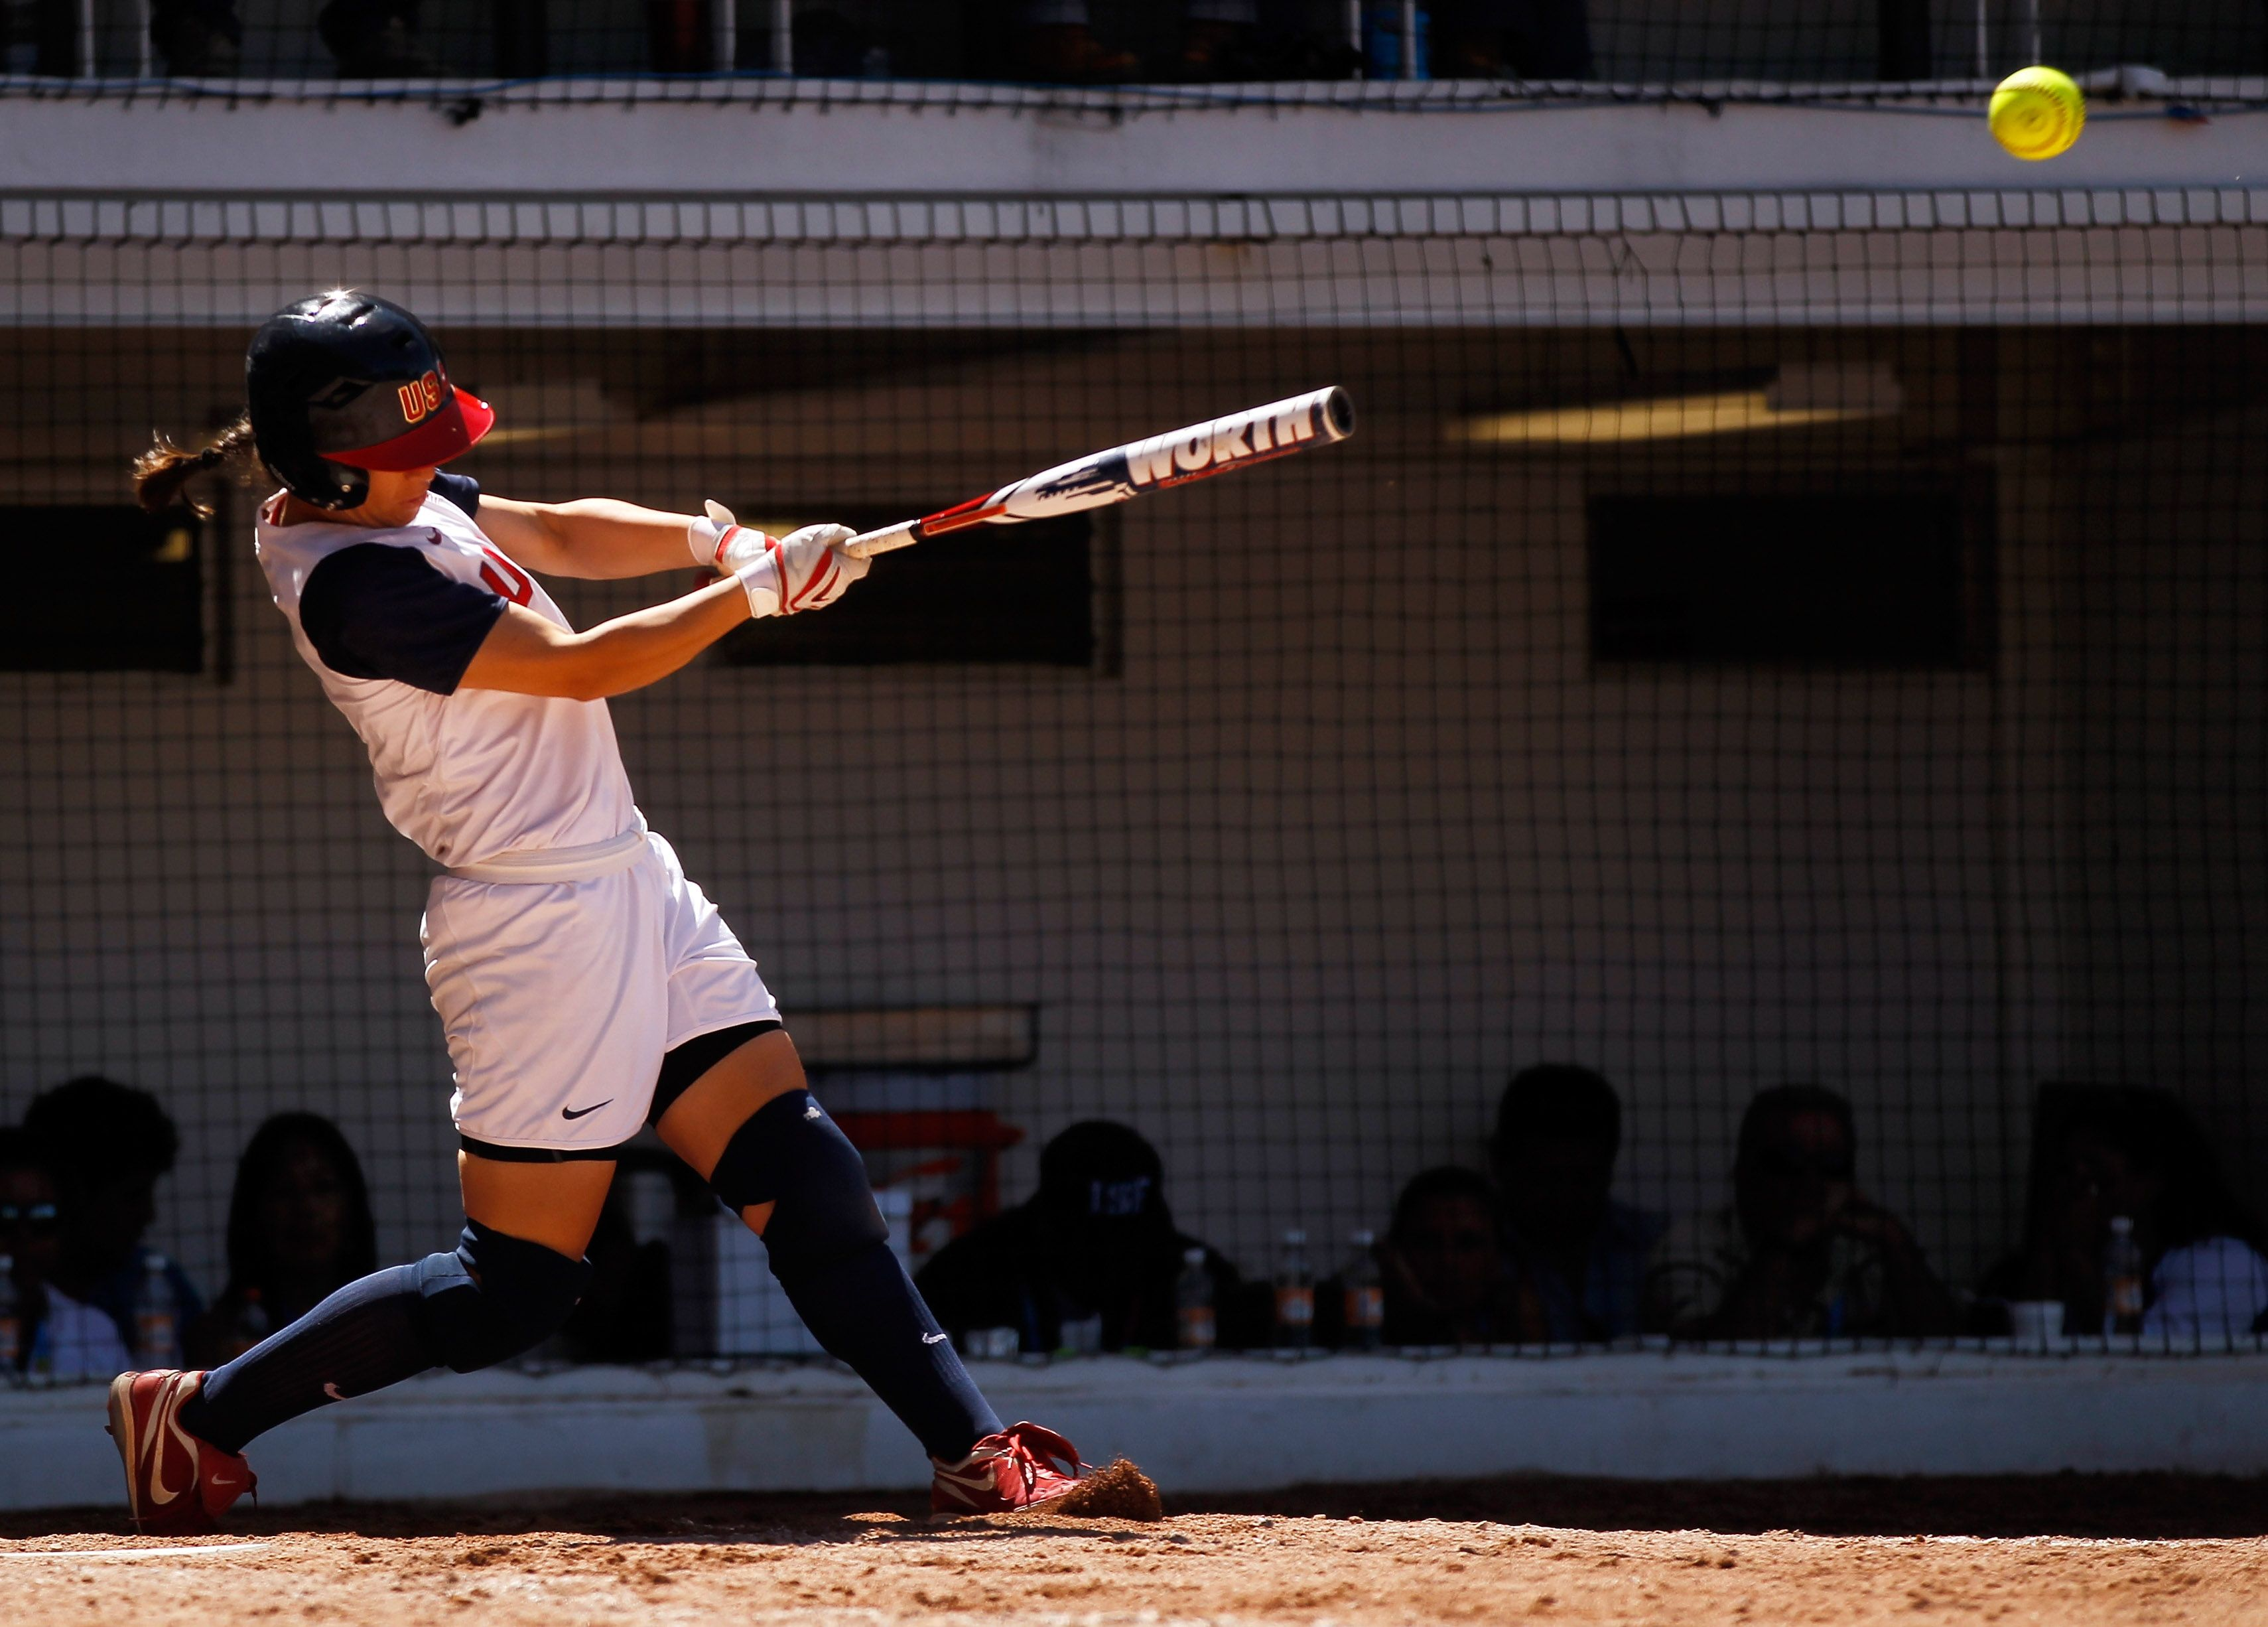 Softball Batting Drills Regarding Hitting a Punching Bag -  http://www.amazingfitnesstips.com/softball-batting-drills-regard… |  Baseball, Softball, Baseball pitching